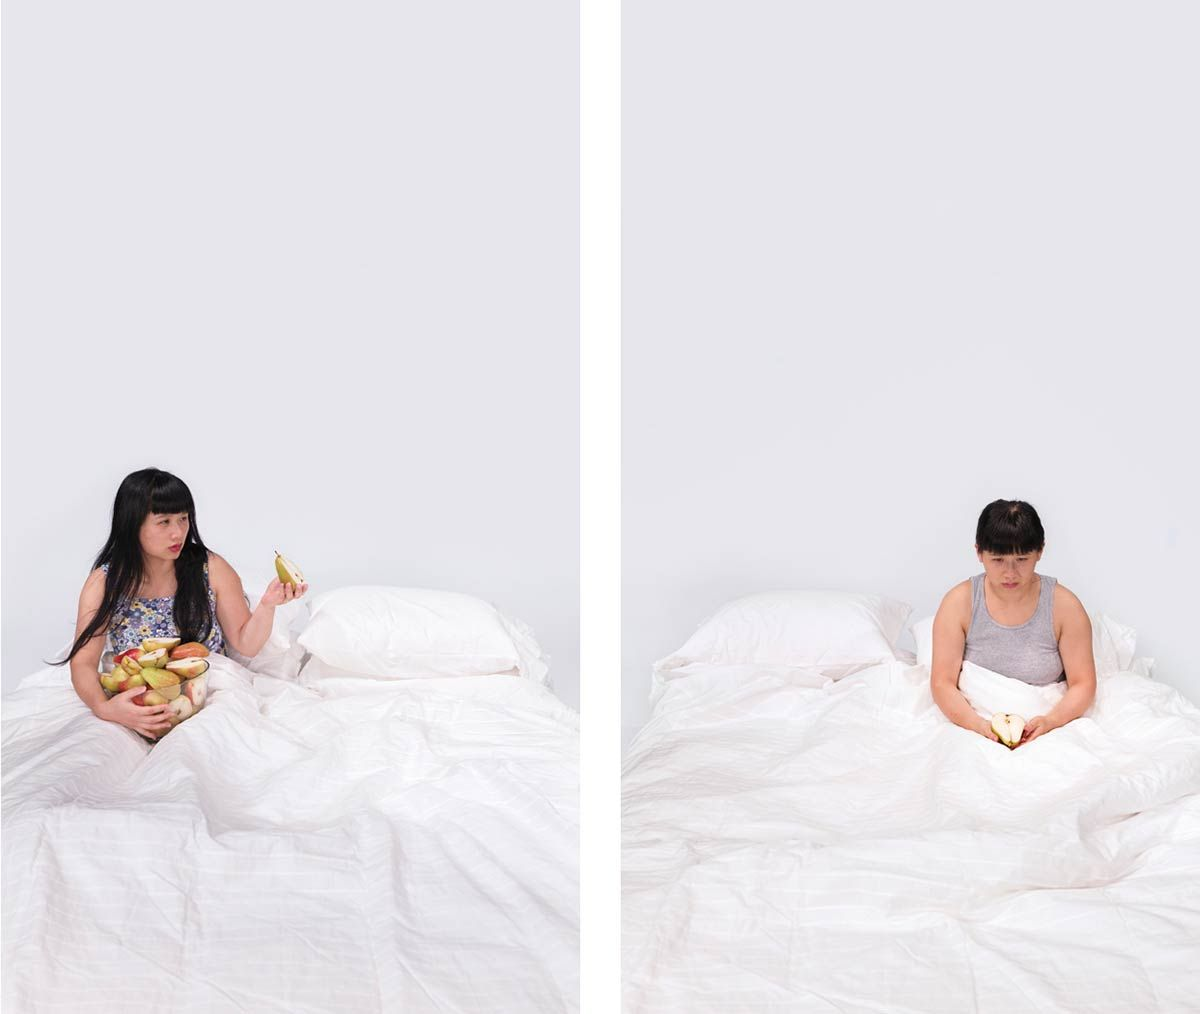 CHUN HUA CATHERINE DONG | ABSENT HUSBAND | INKJET PRINT | 70 X 40 INCHES | 2012